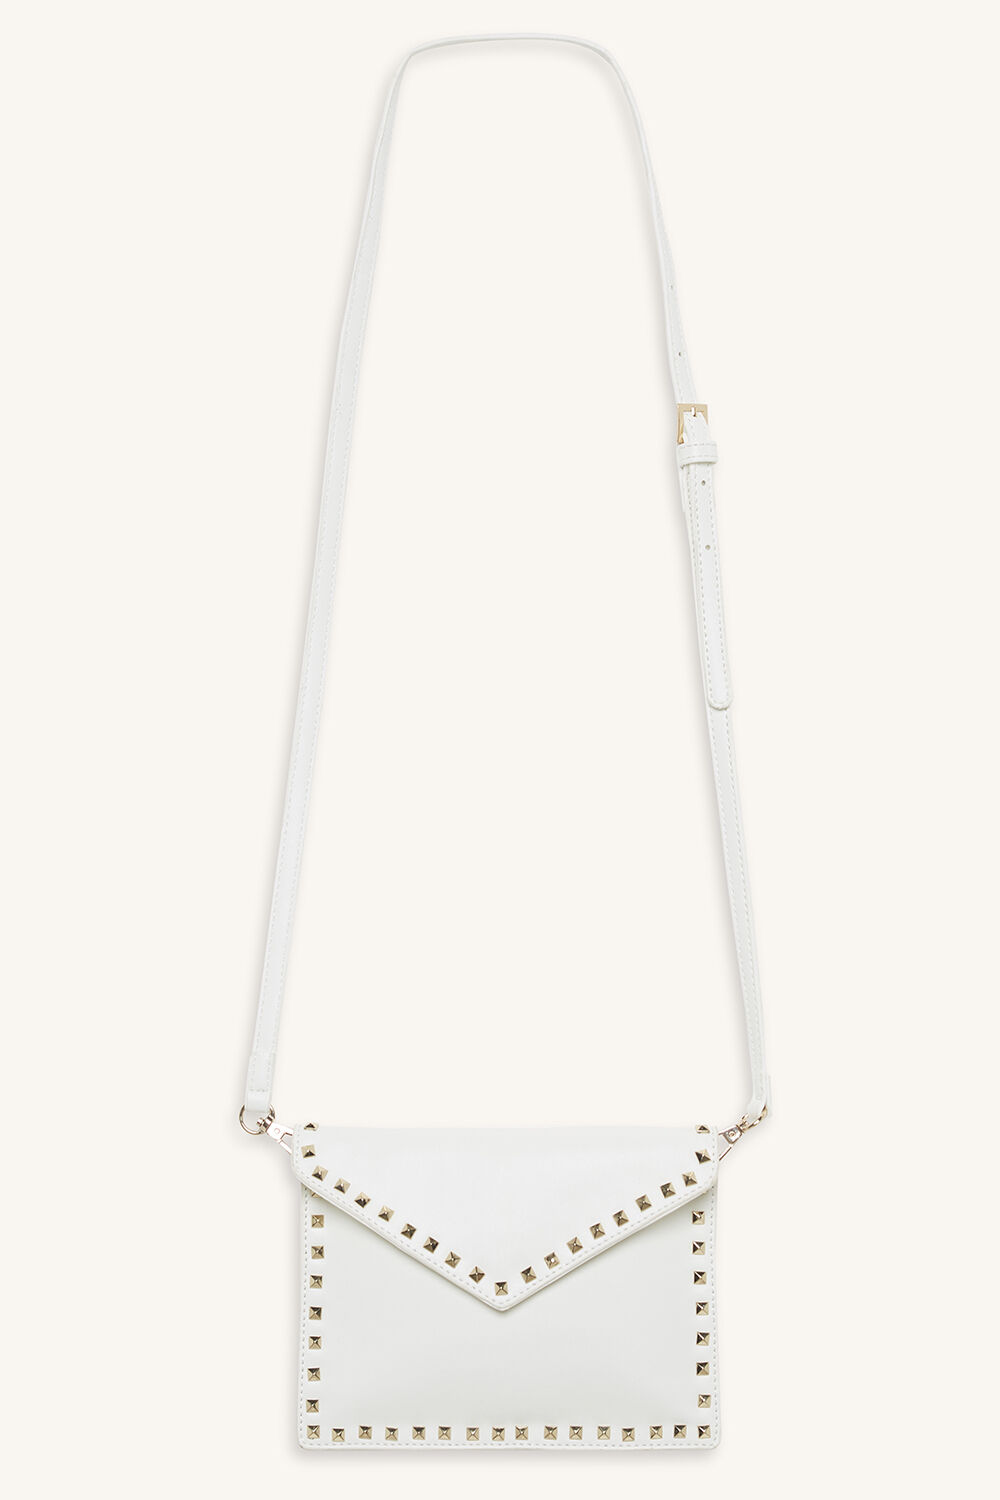 STUDDED ENVELOPE CLUTCH WITH STRAP in colour CLOUD DANCER